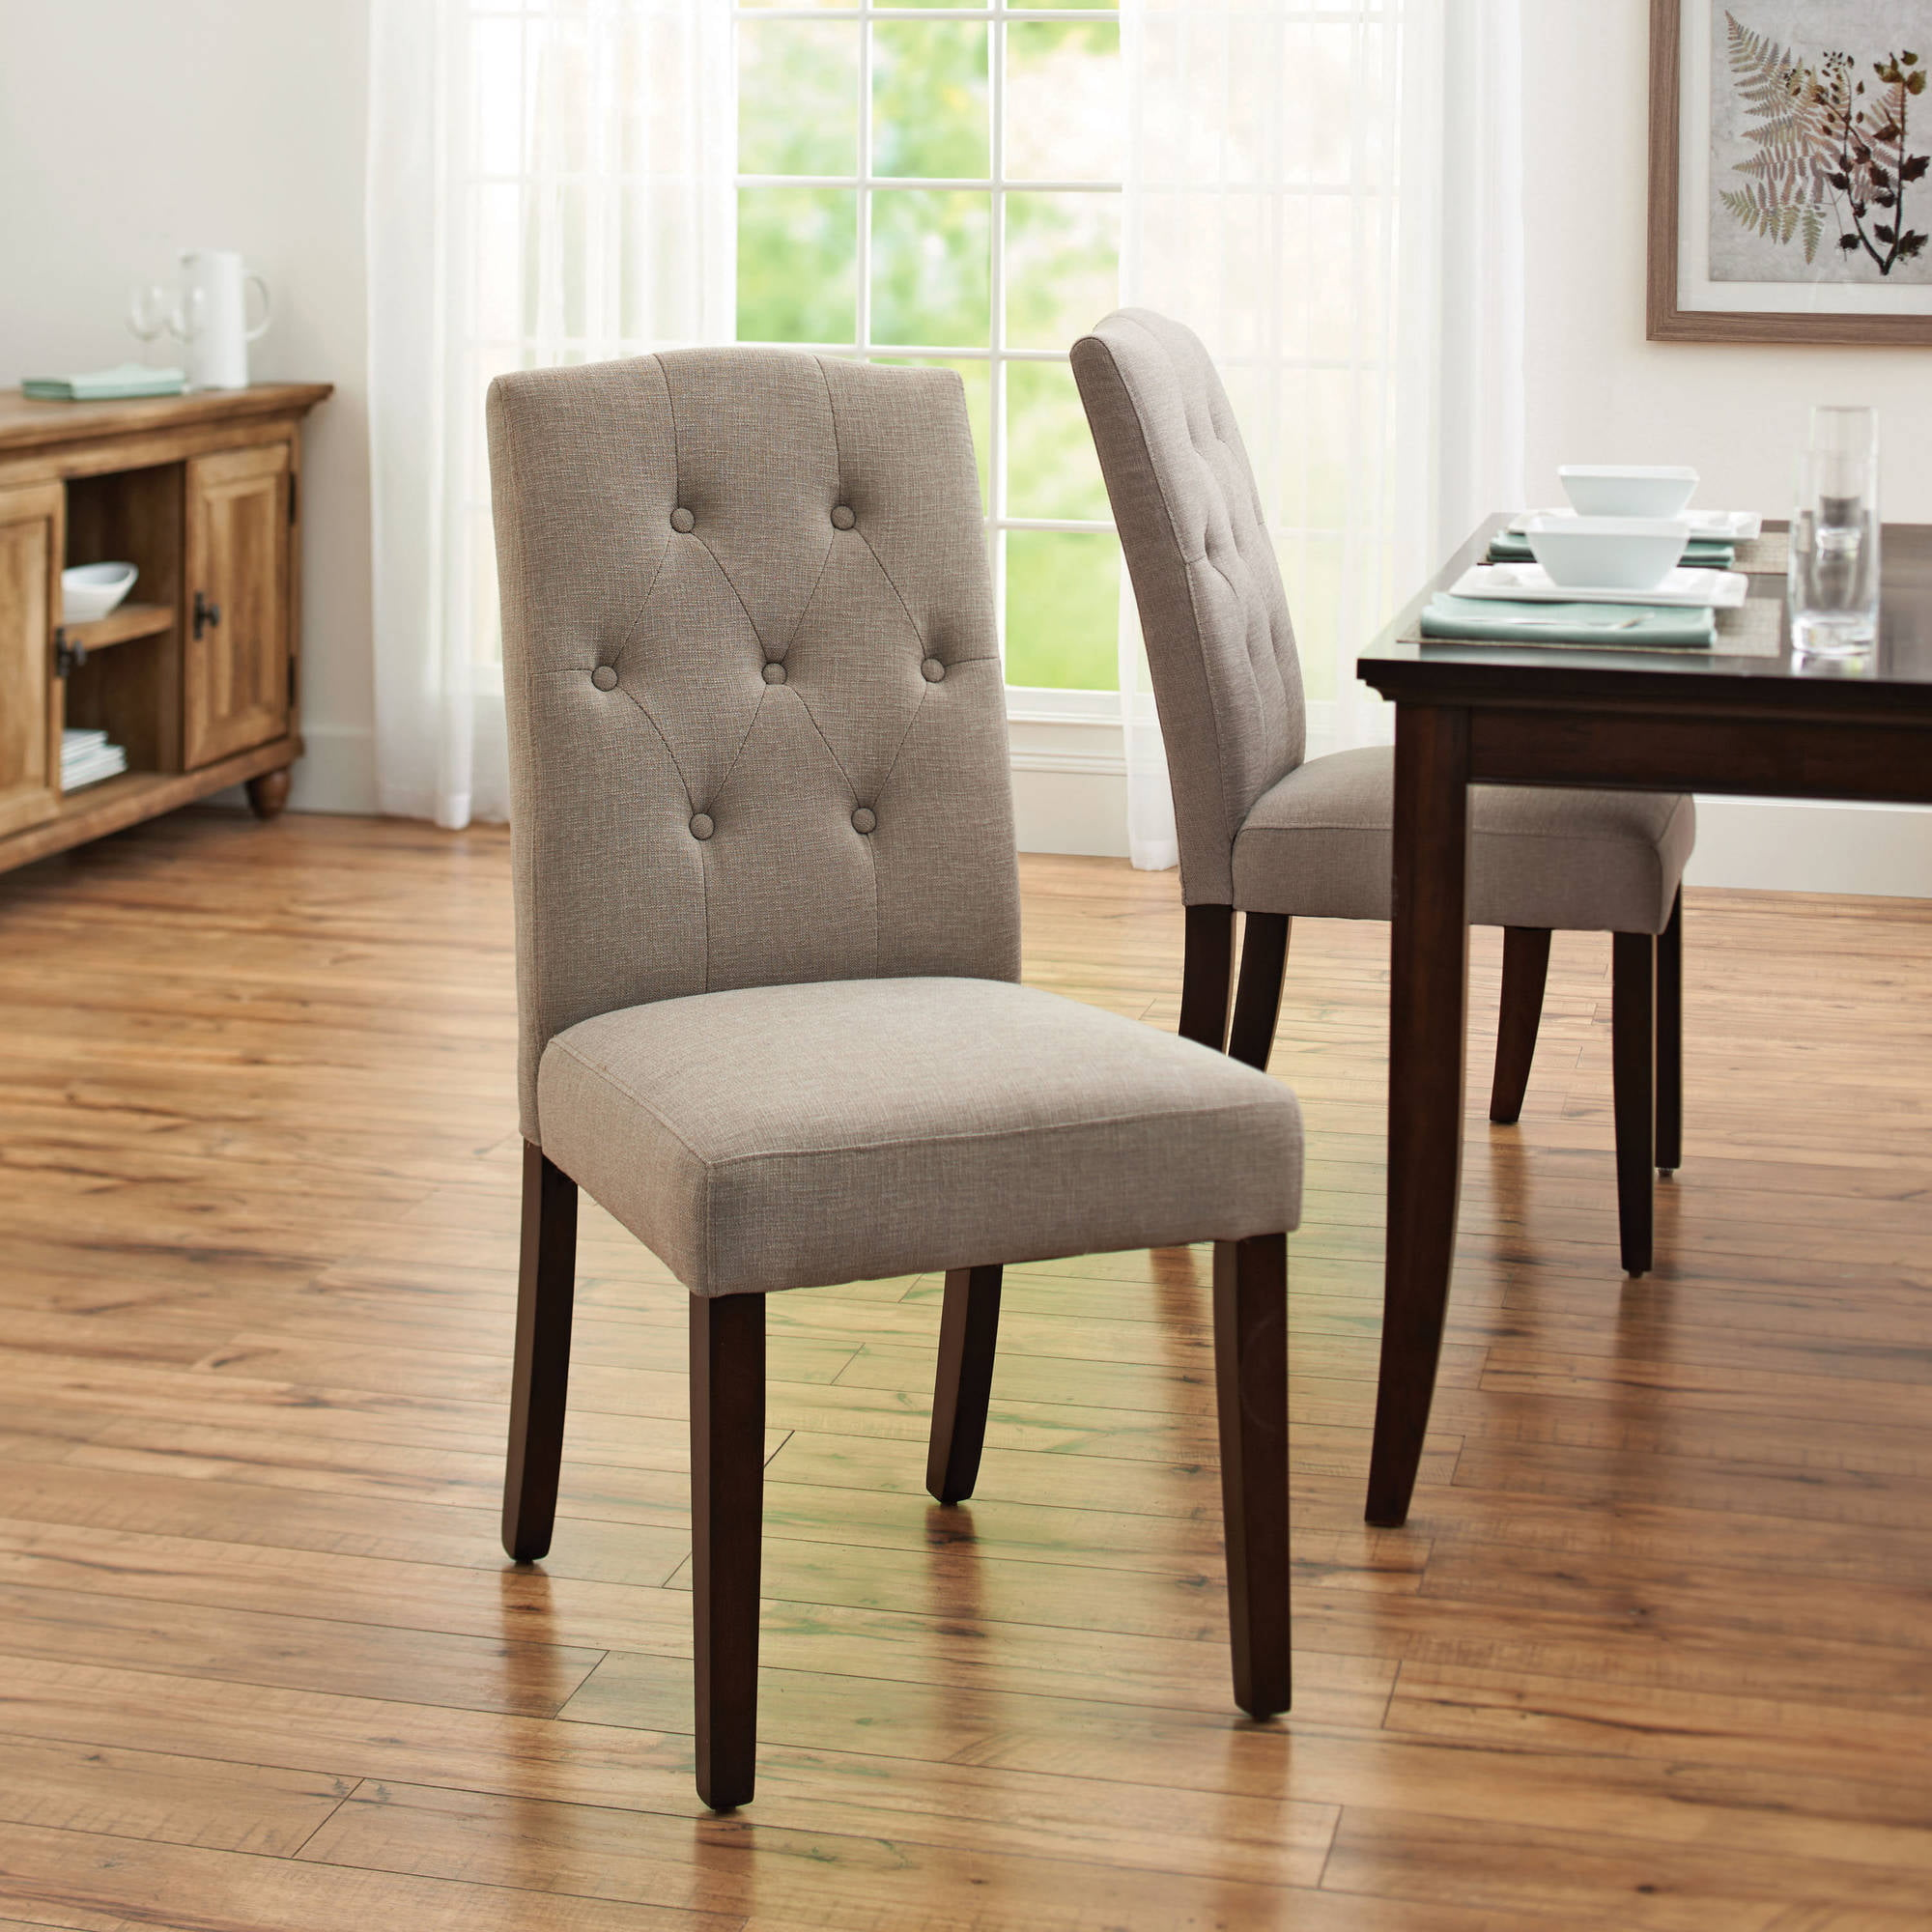 Better Homes And Gardens Parsons Tufted Dining Chair Taupe